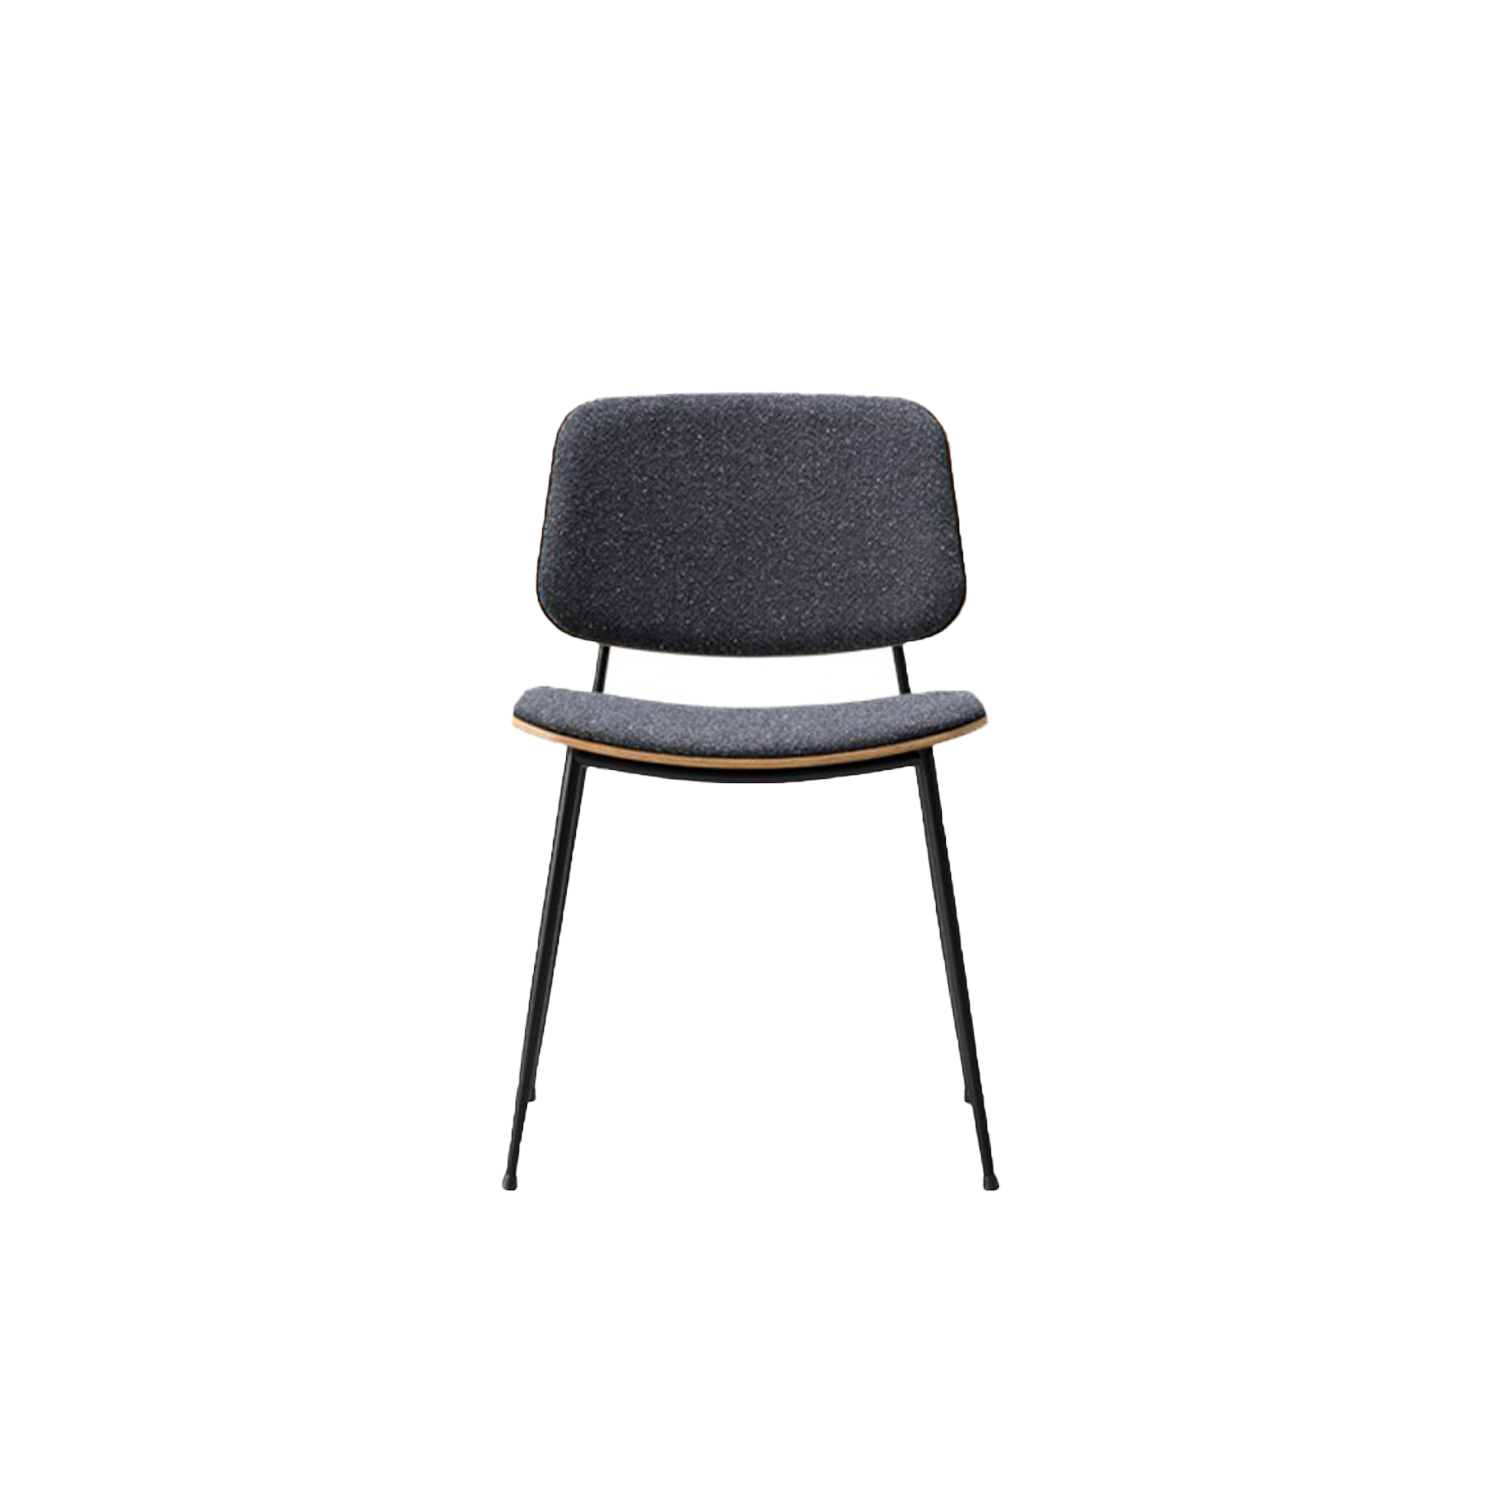 Soborg Metal Base Chair Seat and Back Upholstered - In 1952 Mogensen built onto the Søborg series with a steel-framed version, a design that he viewed as a reflection on international modernism. The generous back and seat with optional upholstery provides for many hours of use.  In 1950, Børge Mogensen introduced the prototype of the Søborg Chair. His fusion of functionalism, expertise in cabinetmaking and use of new production techniques led to a supremely simple chair that could be manufactured industrially.   Merging his signature love of solid wood with his new-found passion for plywood shells, Mogensen crafted the Søborg Chair with soft rounded corners and gentle lines in a timeless design that appears light yet solid, with an ample-sized seat and back to ensure endless hours of comfort. It is a handcrafted approach to an industrial dilemma that highlights the textural properties of solid wood, plywood and later steel, in a subsequent version for the frame.   The Søborg Chair remains a favourite for its simple, unimposing presence. A chair that's equally at home in any modern environment – in restaurants, working spaces, public areas or any socially engaging space. | Matter of Stuff